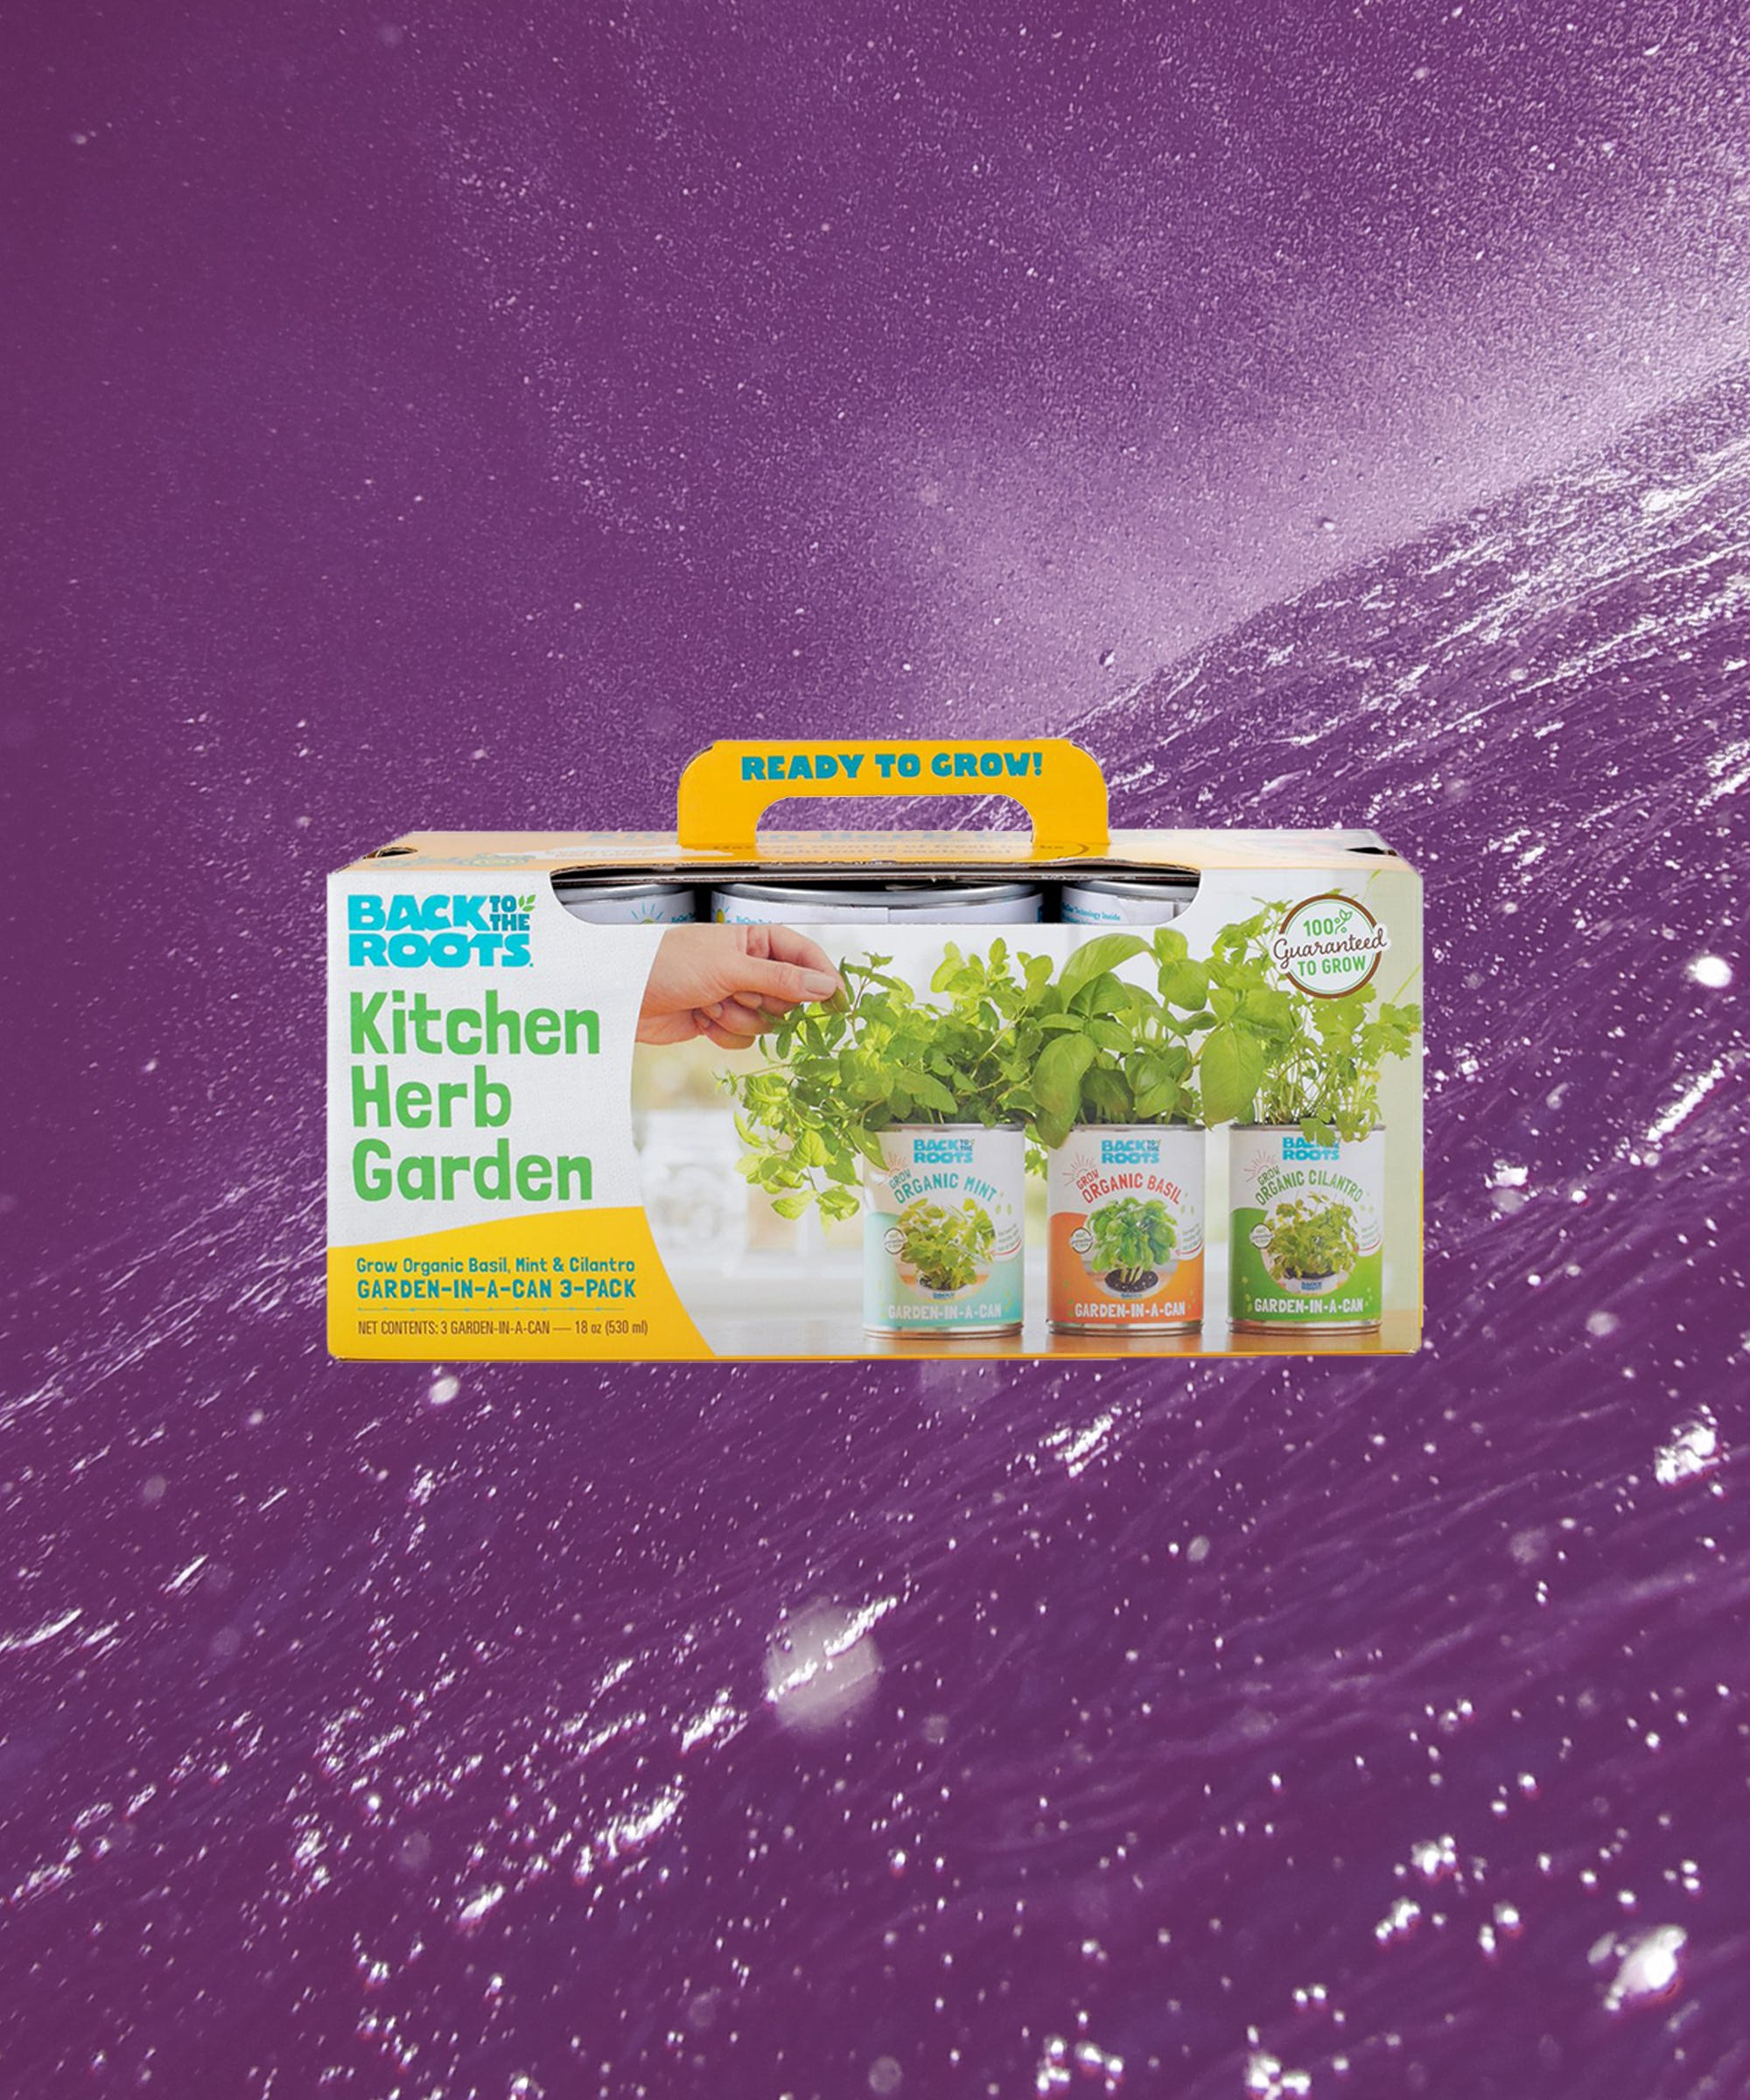 Cook Like A Gourmet Chef With These Highly-Rated Indoor Herb Garden Kits